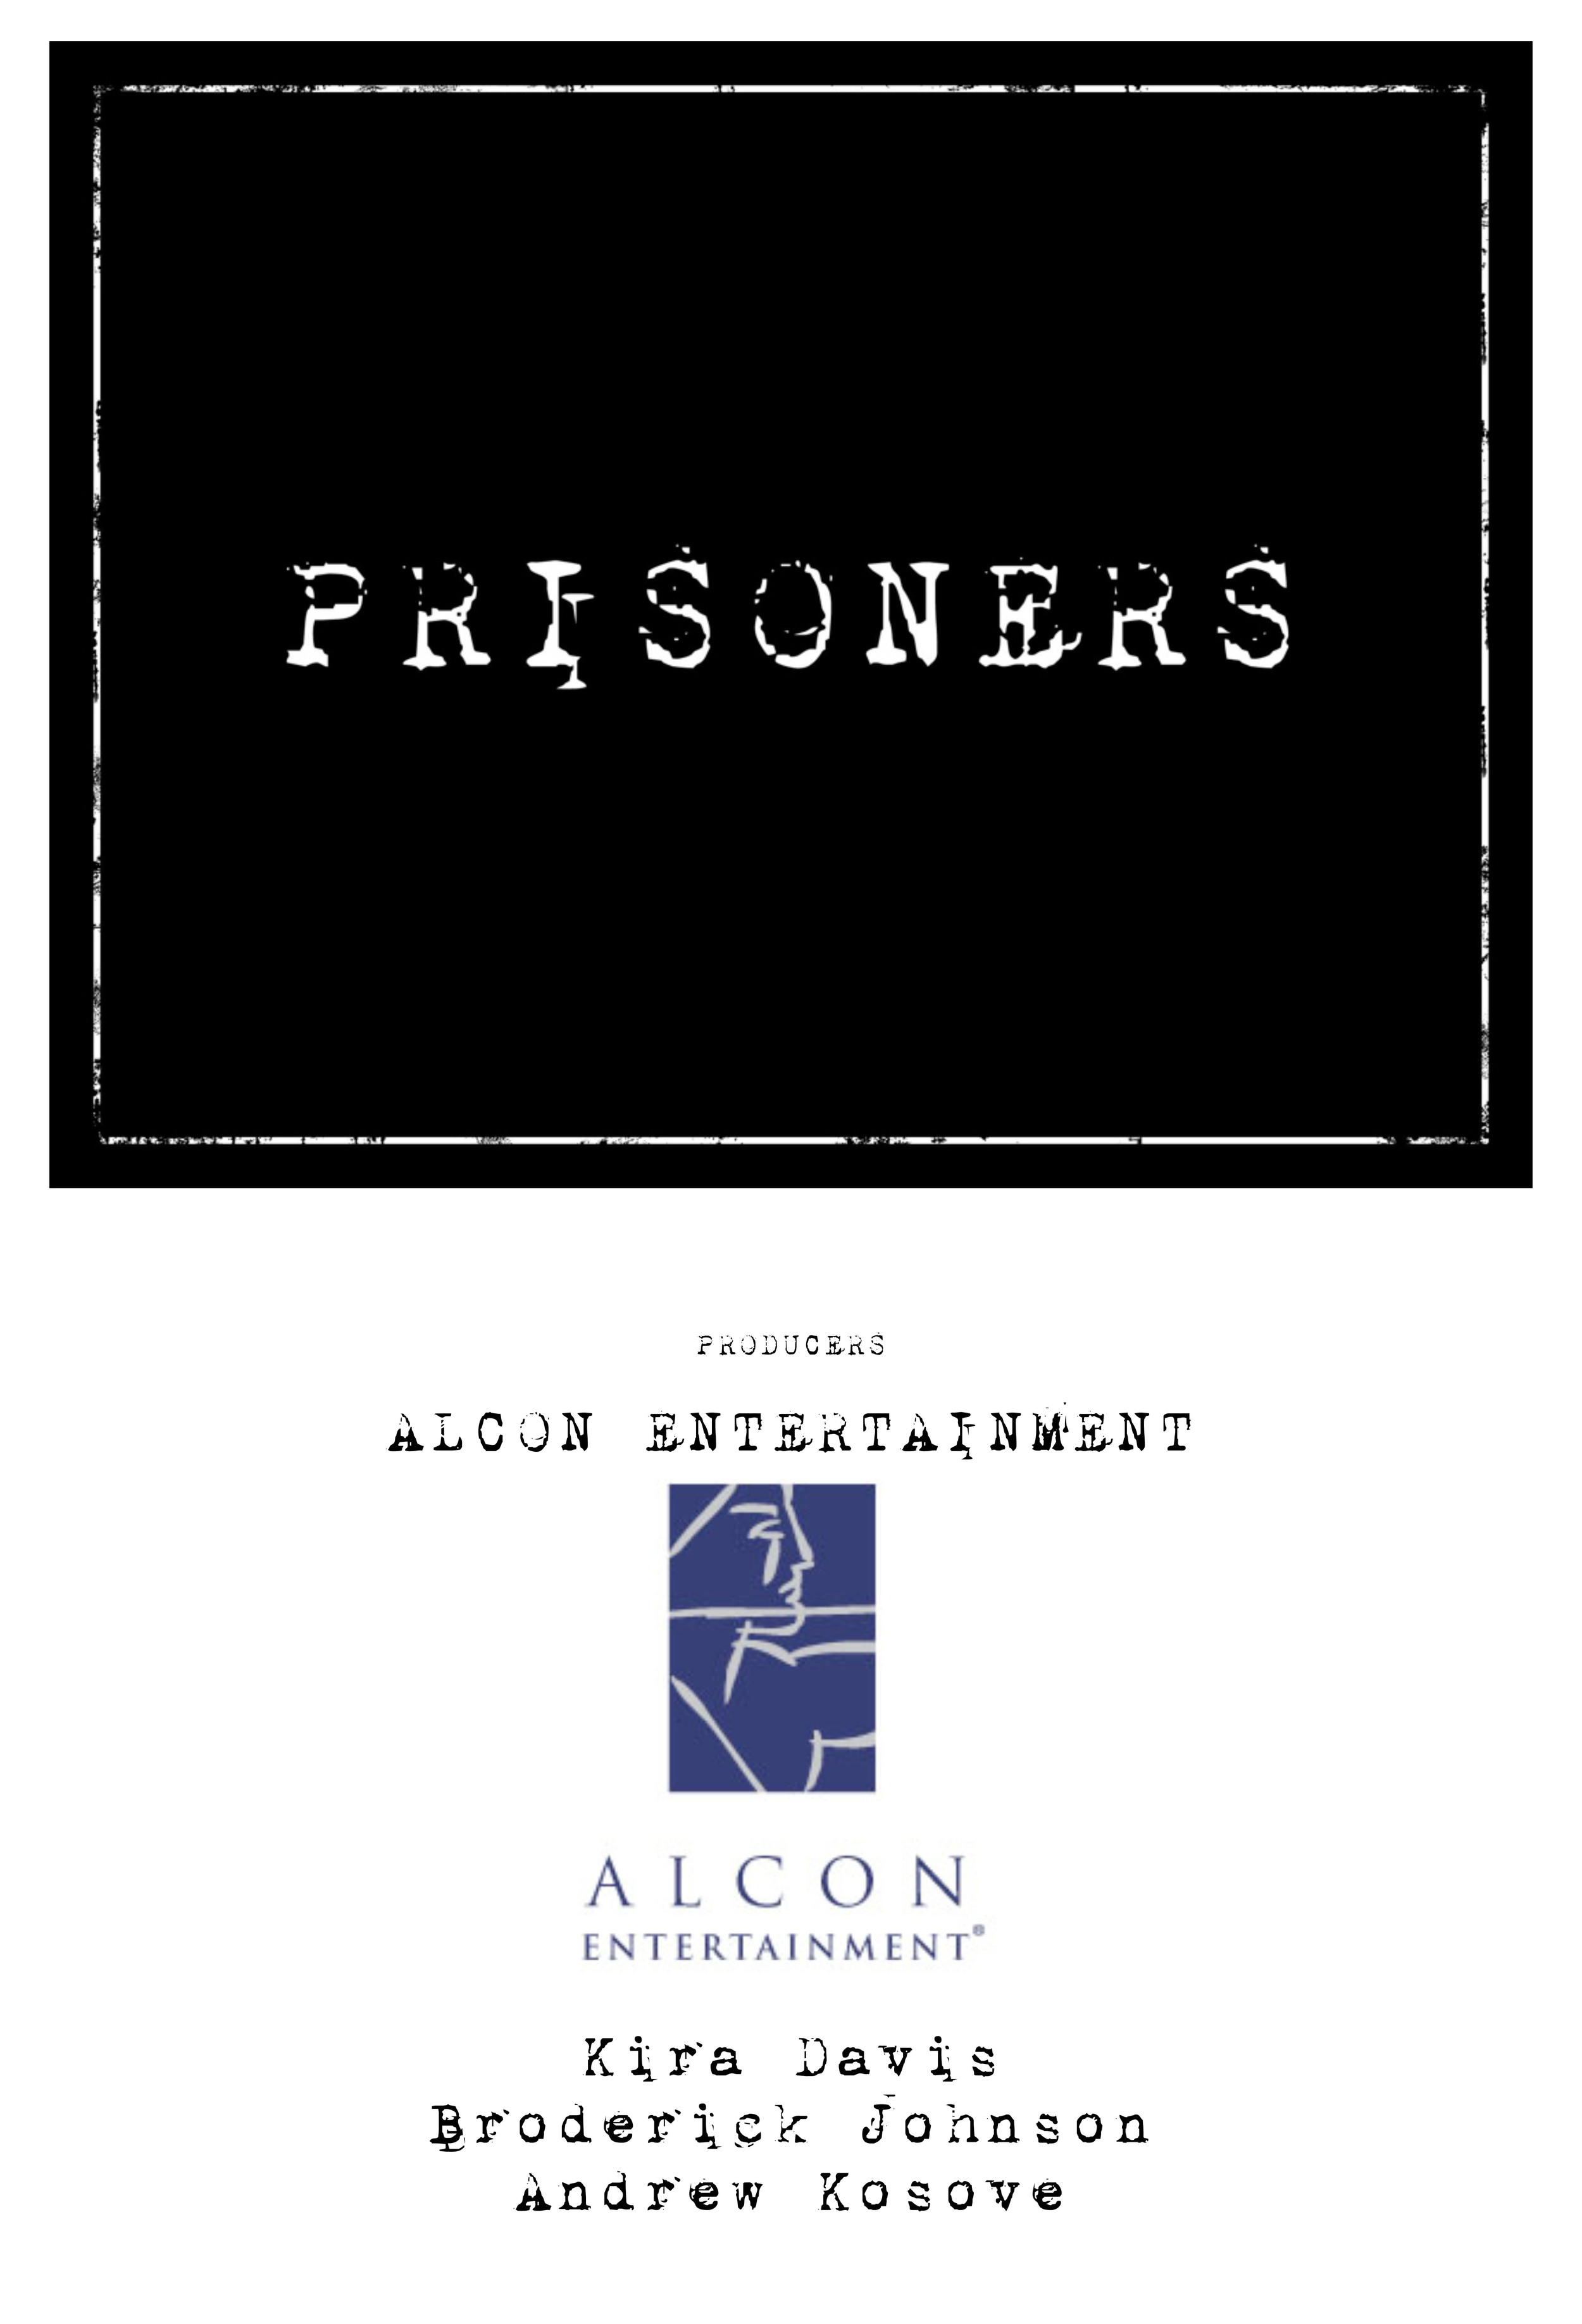 PrisonersPresentation-1.jpg